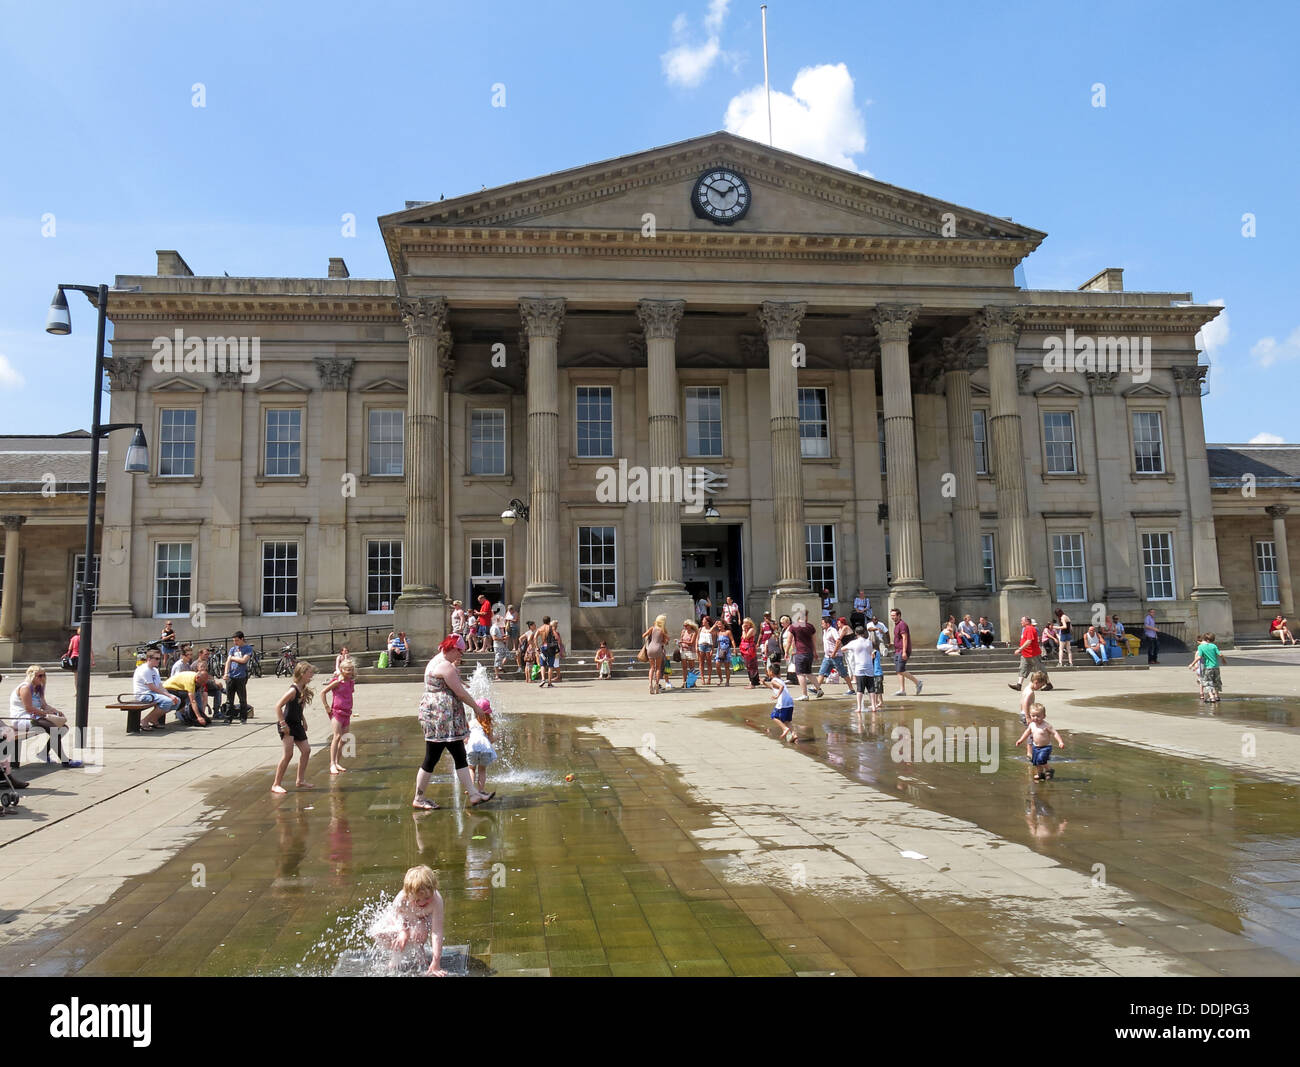 Huddesfield,fountain,fountains,summer,sunny,sun,sunshine,daytime,2013,St,Georges,George,saint,ST.,sq,square,West,Yorks,Yorkshire,England,UK,GB,great,Britain,town,Harold,Wilson,statue,bronze,Hudds,Huds,HD11JY,HD1,1JY,popular,kirklees,kirklees,local,authority,council,head,of,steam,pub,ale,train,gotonysmith,trail,aletrail,CAMRA,real,beer,historic,heart,of,water,feature,architect,James,Pigott,Ptitchett,classical,style,facade,with,a,portico,of,the,Corinthian,order,consisting,of,six,columns,in,width,and,two,in,depth,facing,out,towards,Lion,Buildings,most,famous,son,Ian,Walters,sculpture,Buy Pictures of,Buy Images Of